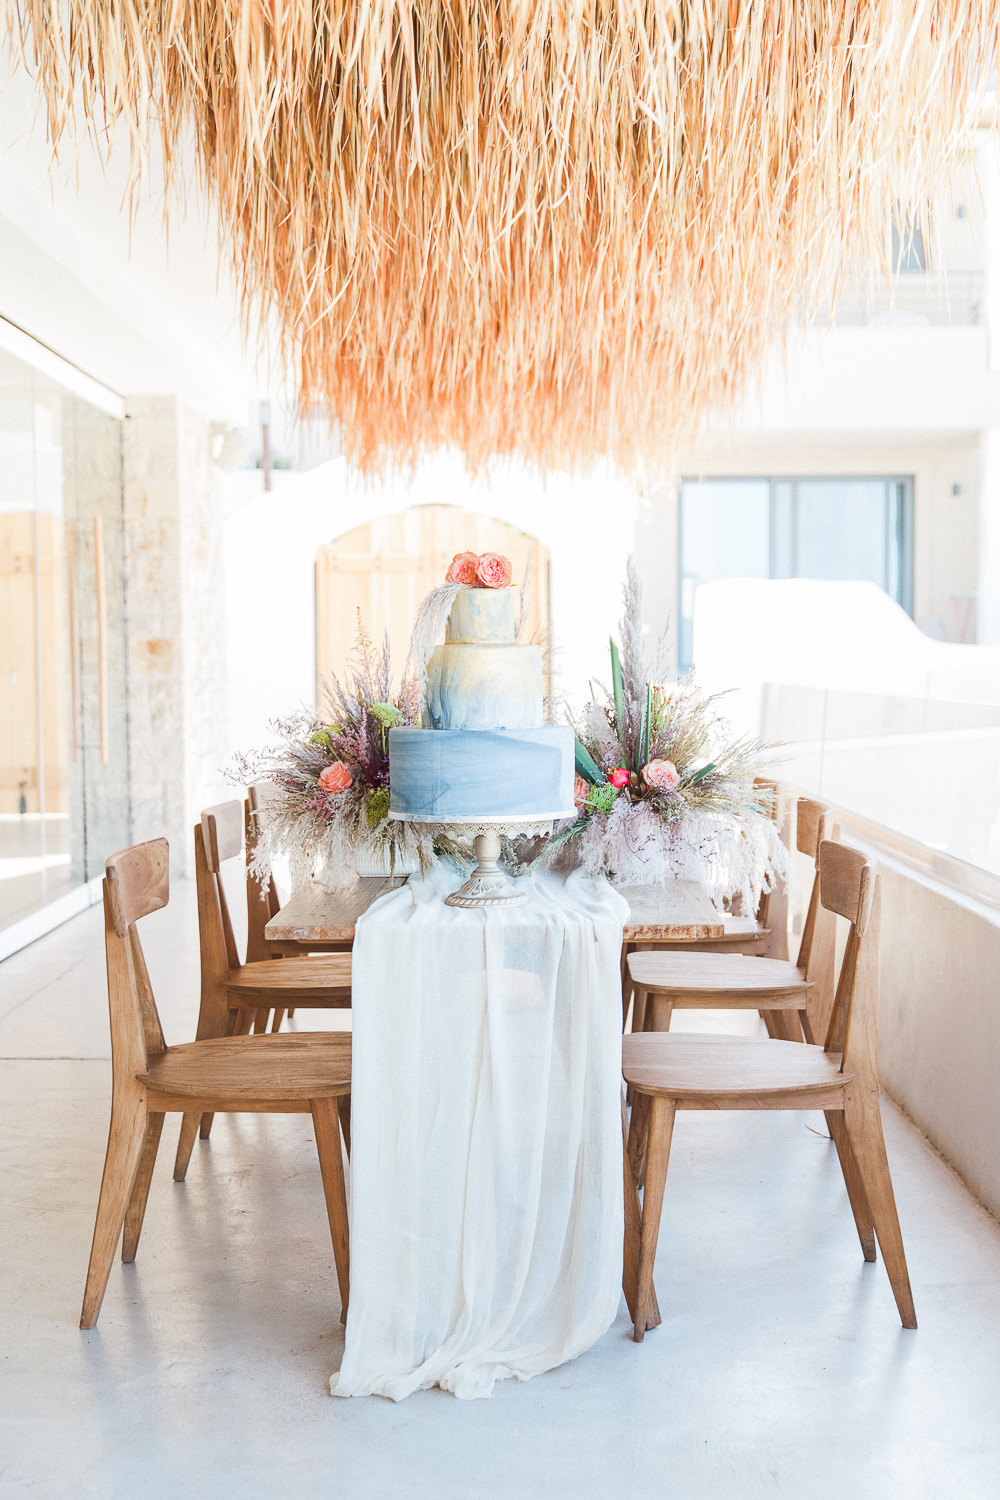 Wedding cake table at Crystal Waters Lefkada in Greece